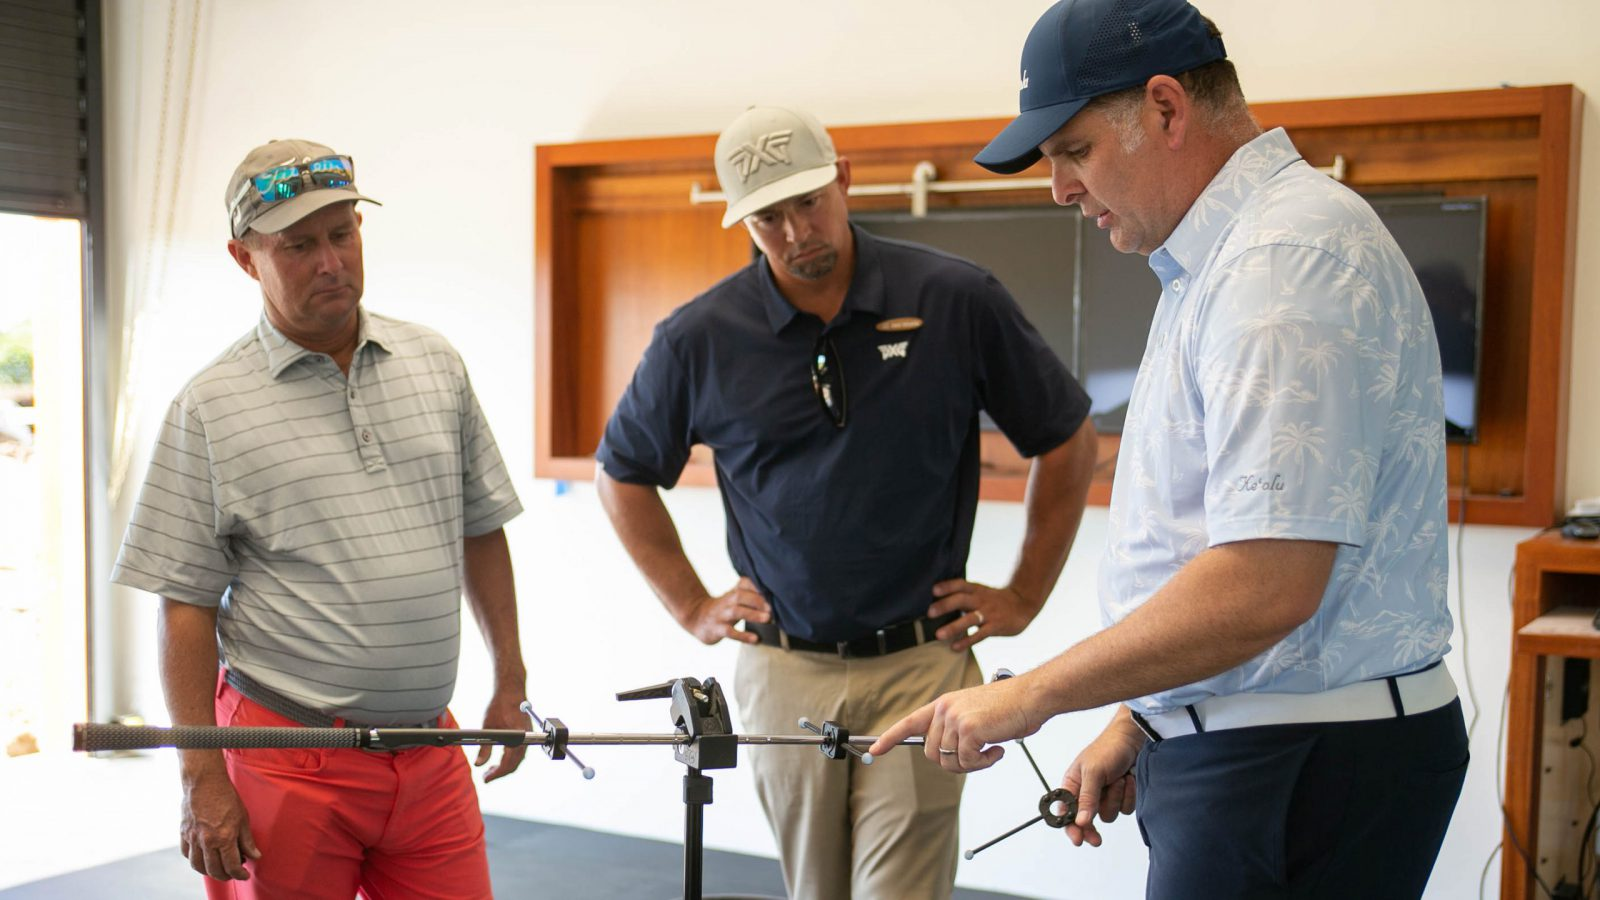 Golf Pro instructs golfers in a lesson